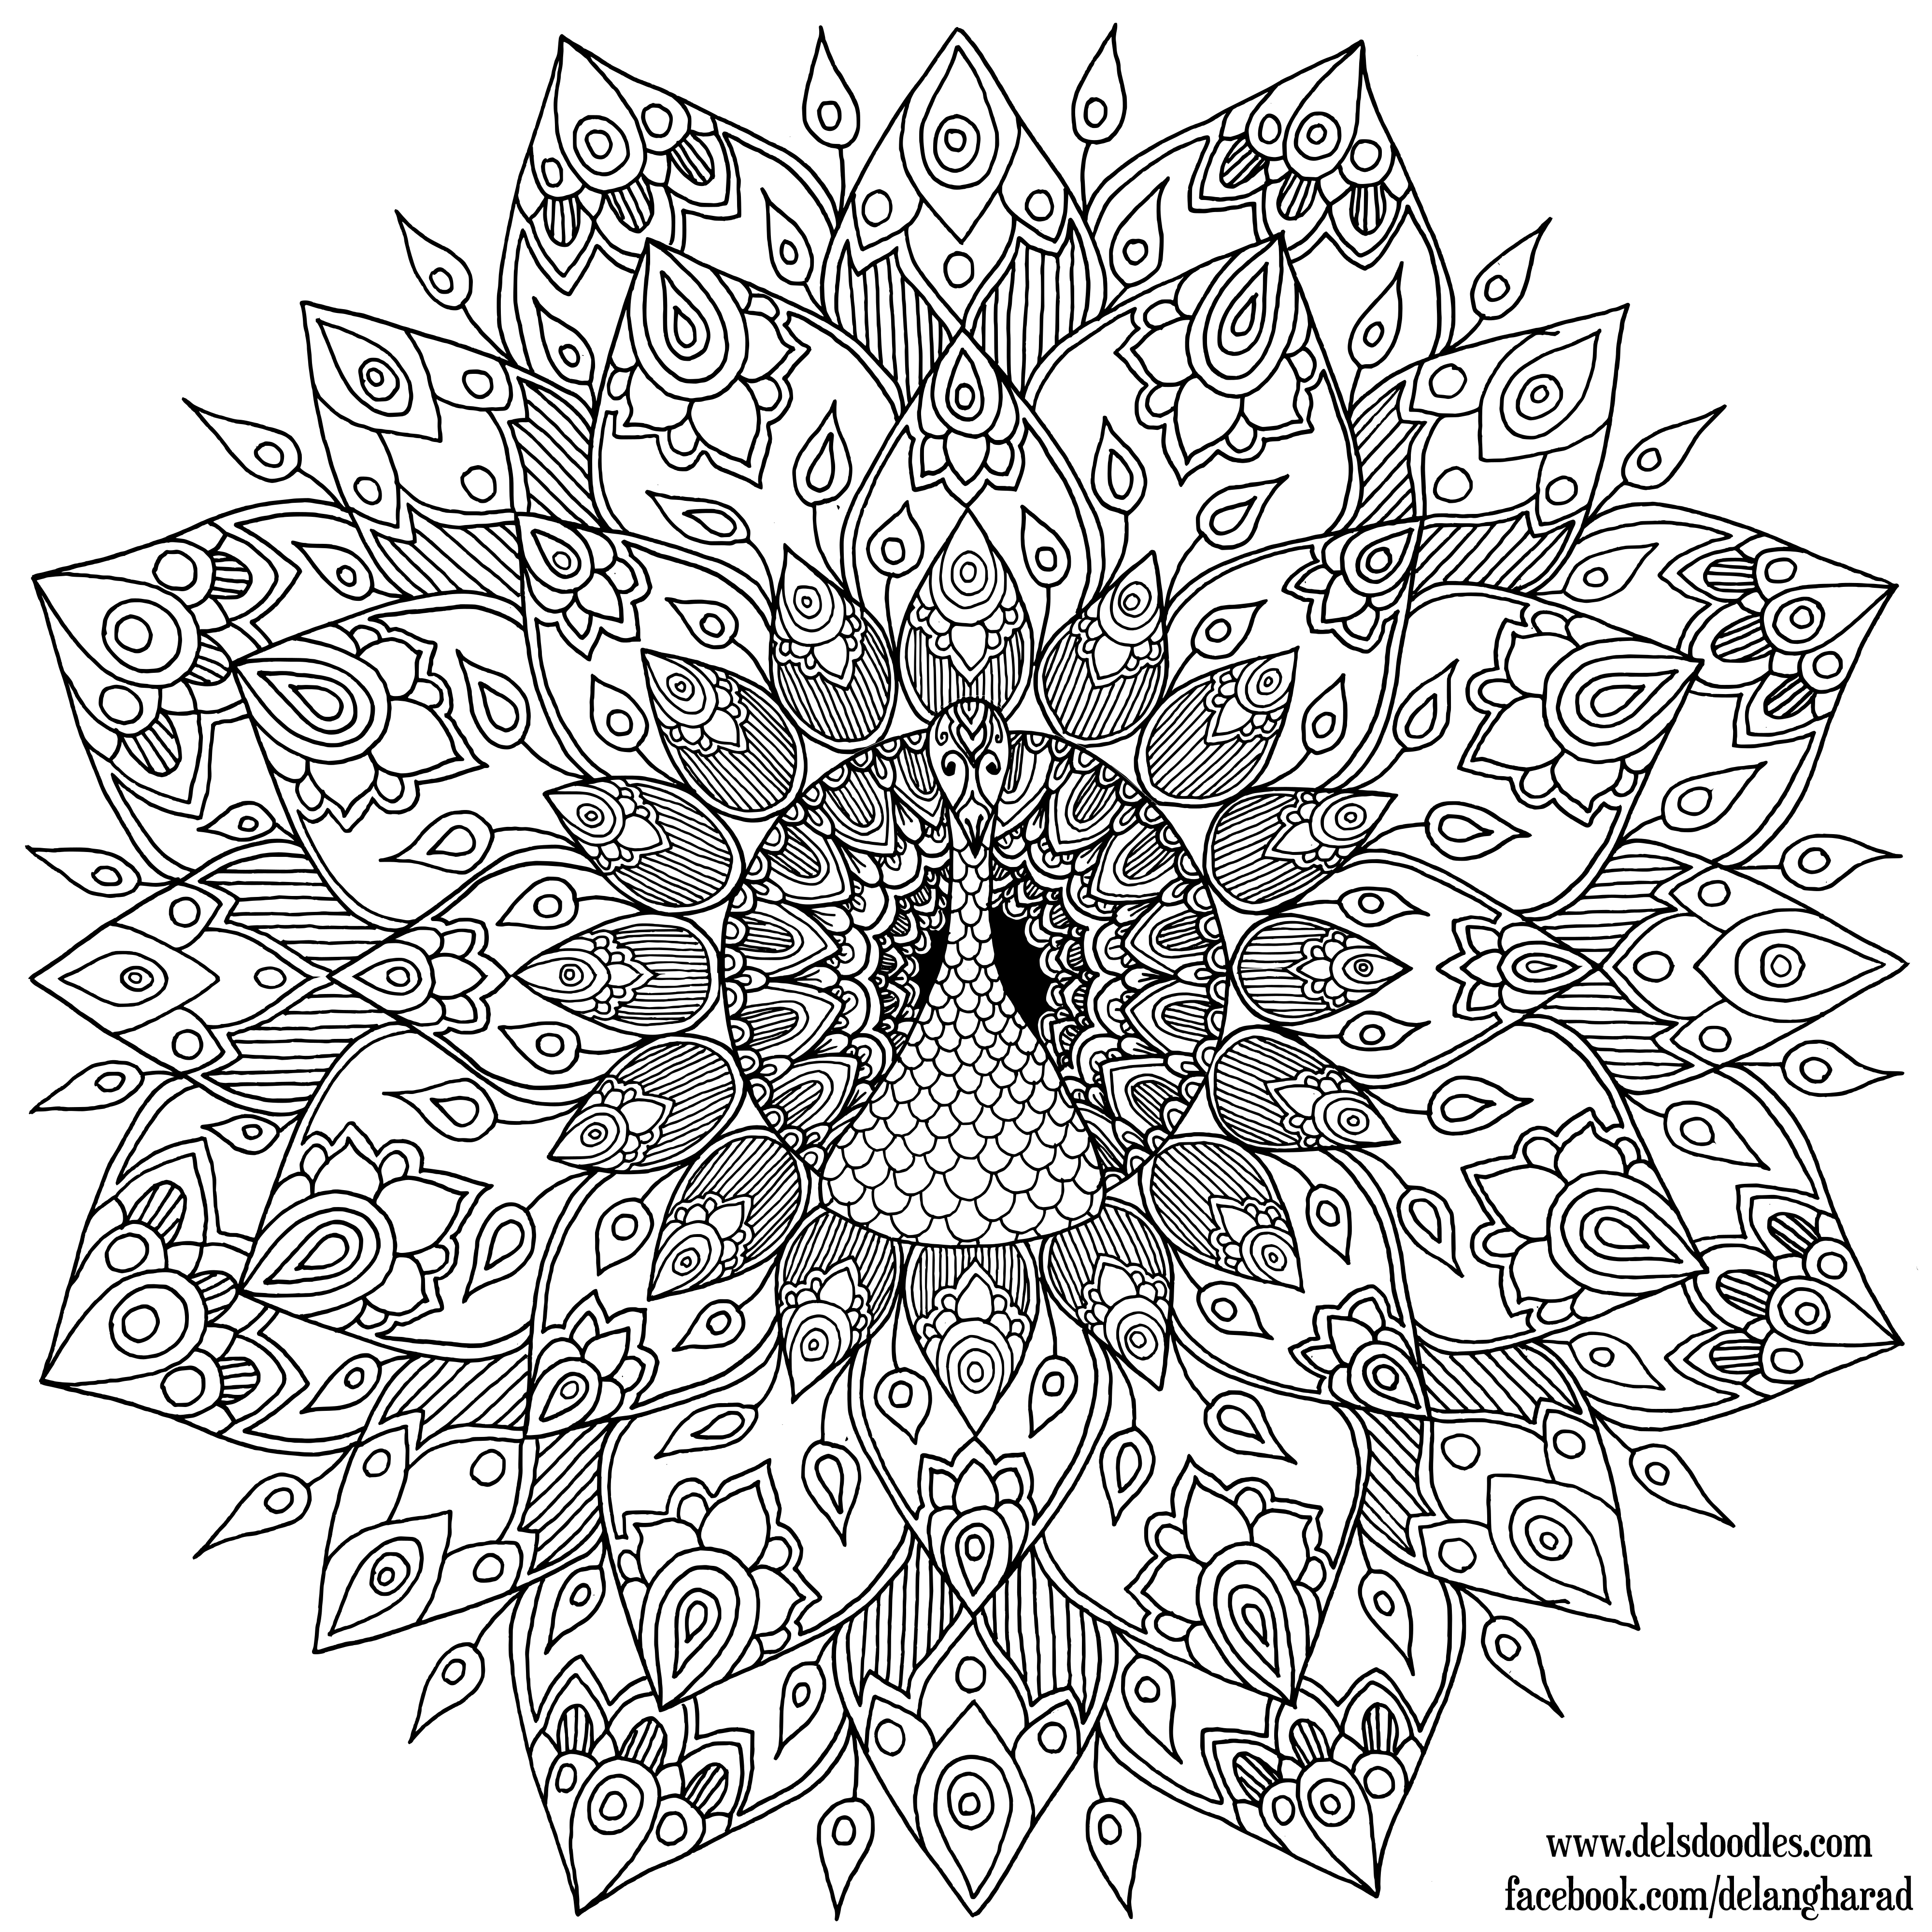 free printable peackoxk mosaic art coloring pages | Hand-Drawn Peacock Mandala Colouring Page by WelshPixie on ...